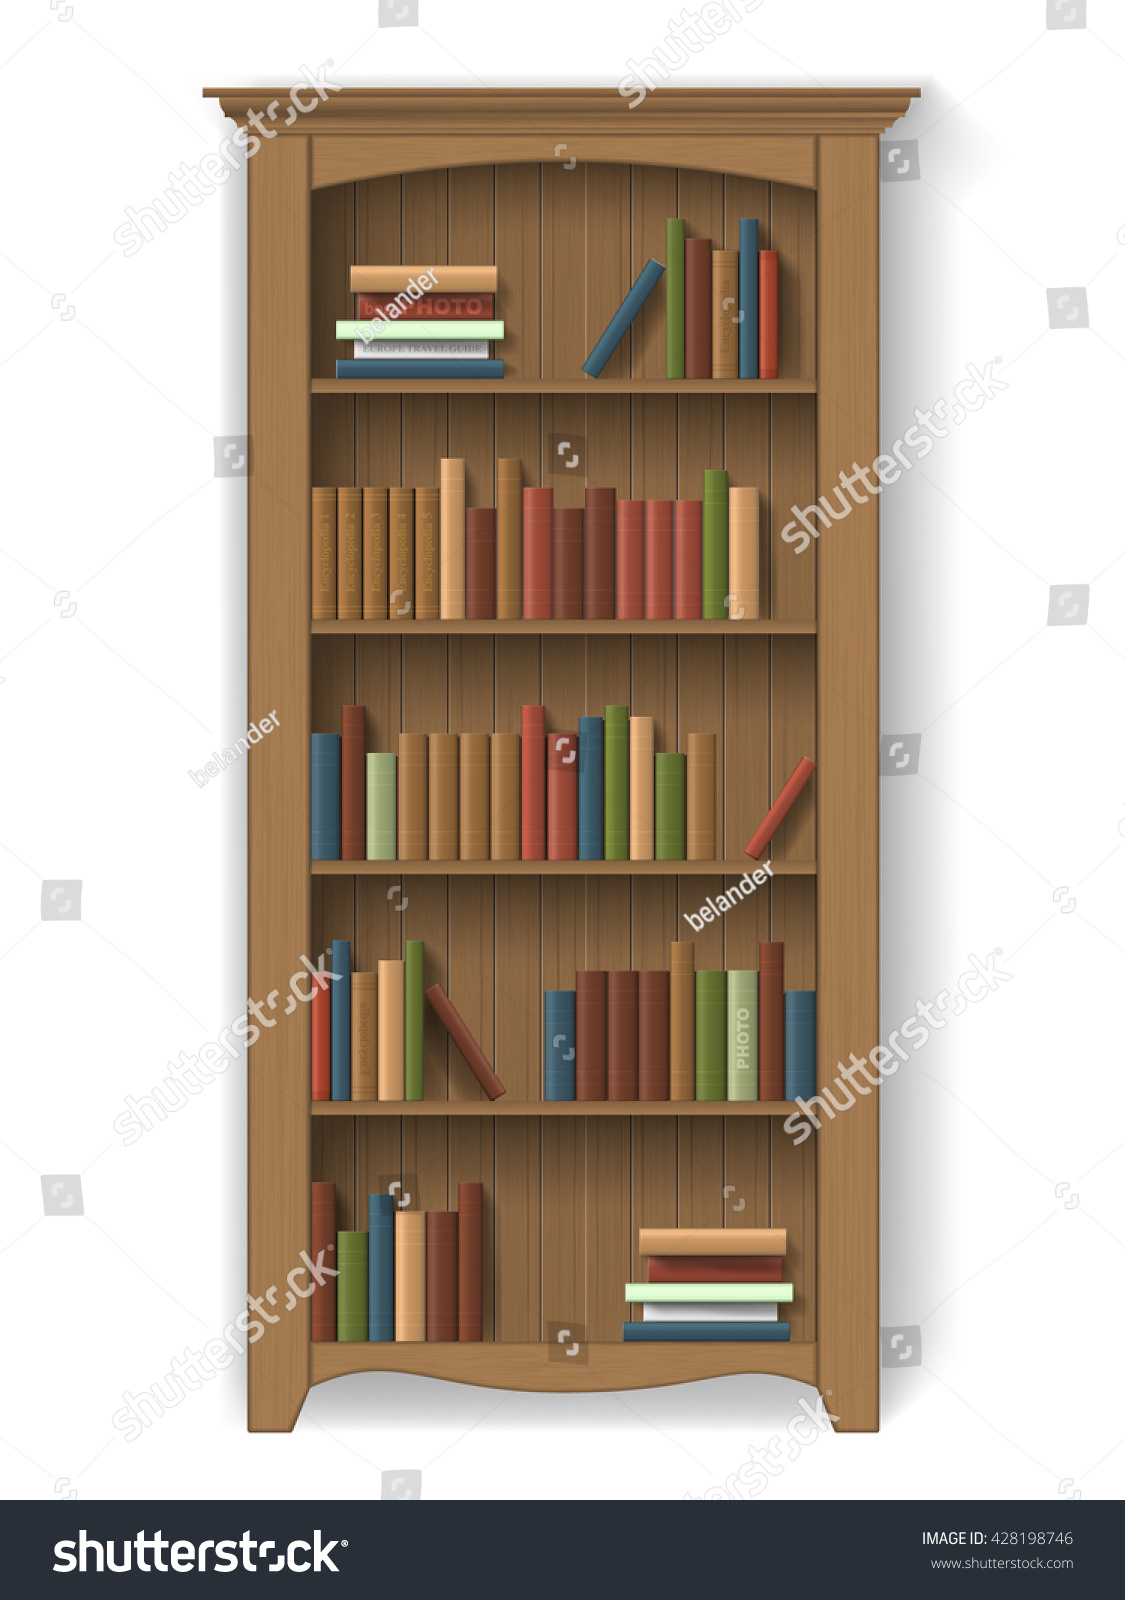 Interior wooden shelves free vector - Wooden Bookcase With Books On The Shelves Furniture For Library Or Cabinet Element Of